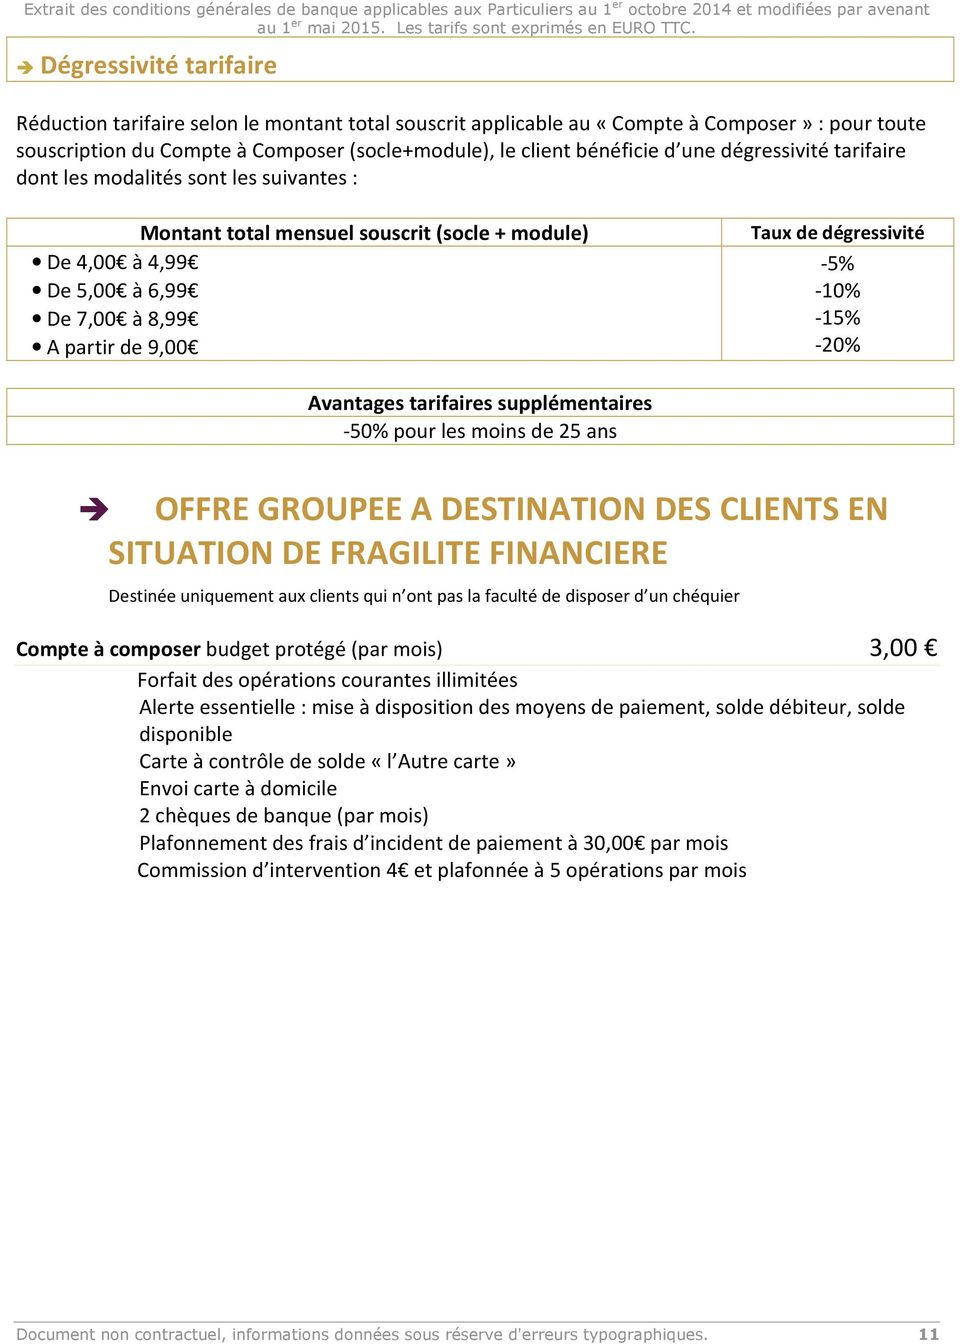 -10% -15% -20% Avantages tarifaires supplémentaires -50% pour les moins de 25 ans OFFRE GROUPEE A DESTINATION DES CLIENTS EN SITUATION DE FRAGILITE FINANCIERE Destinée uniquement aux clients qui n